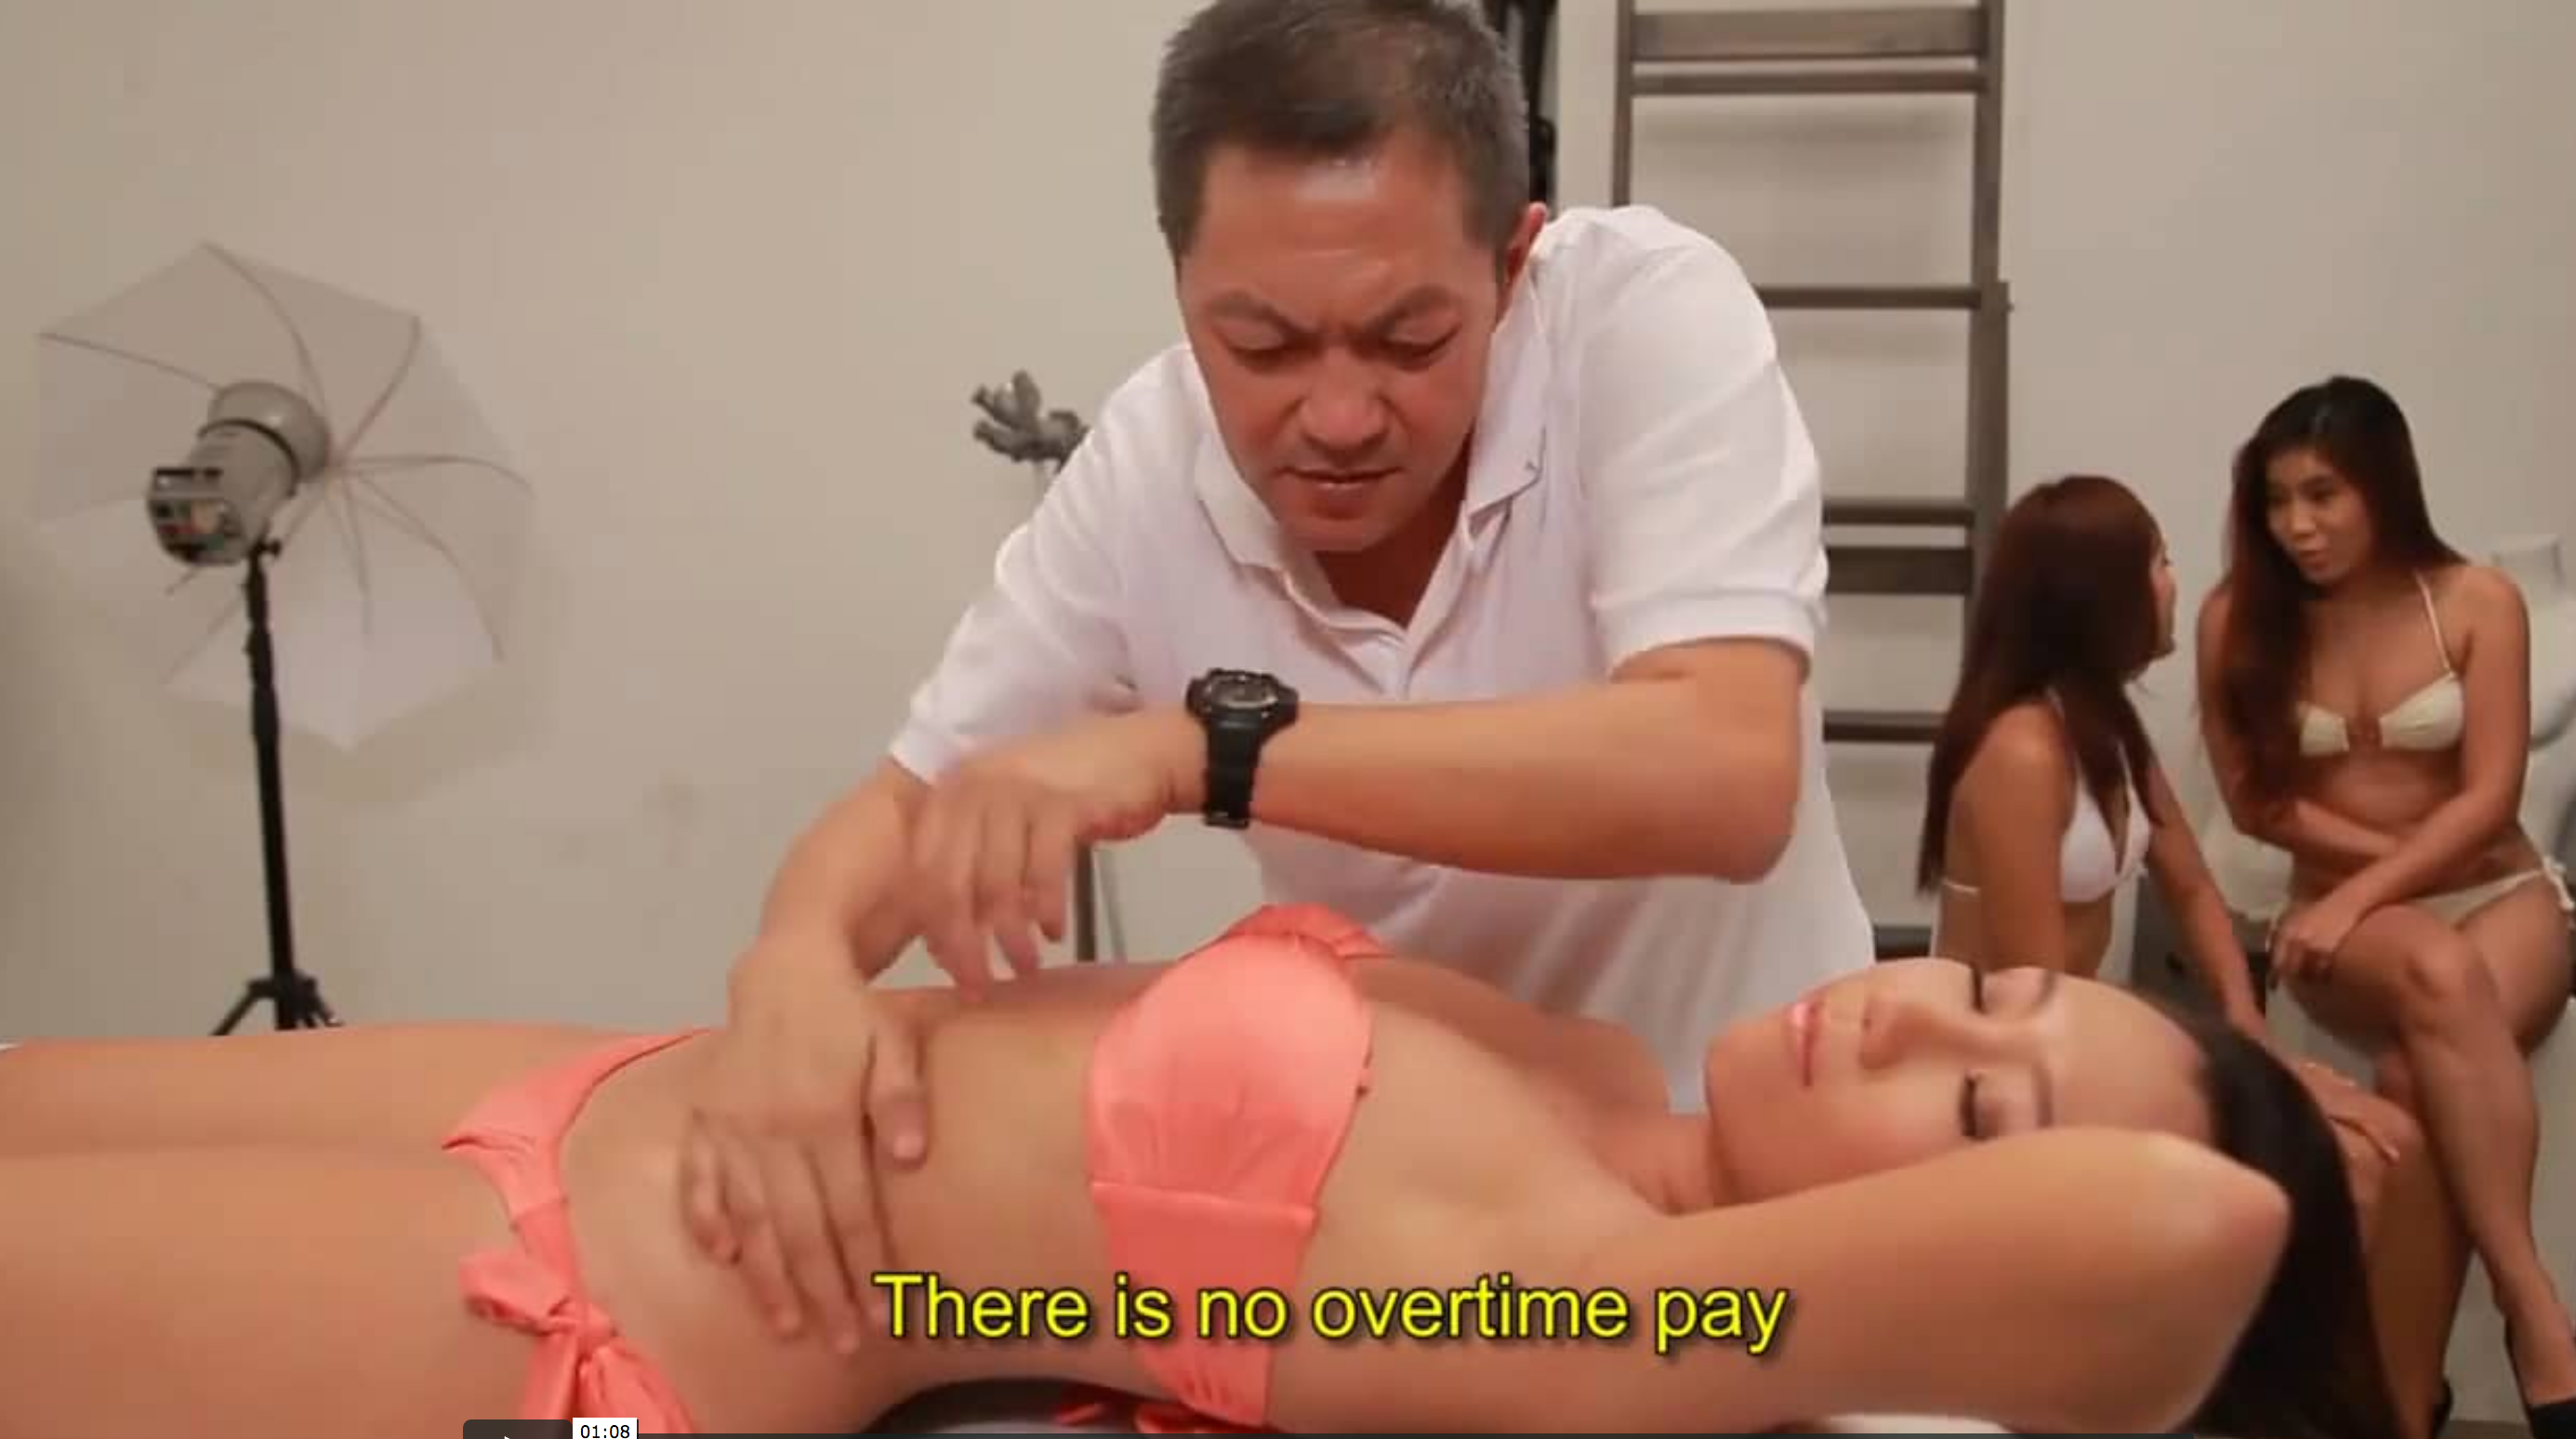 The Uncle that went Viral! Catching Up With Singapore's Massage Uncle (via RICE)